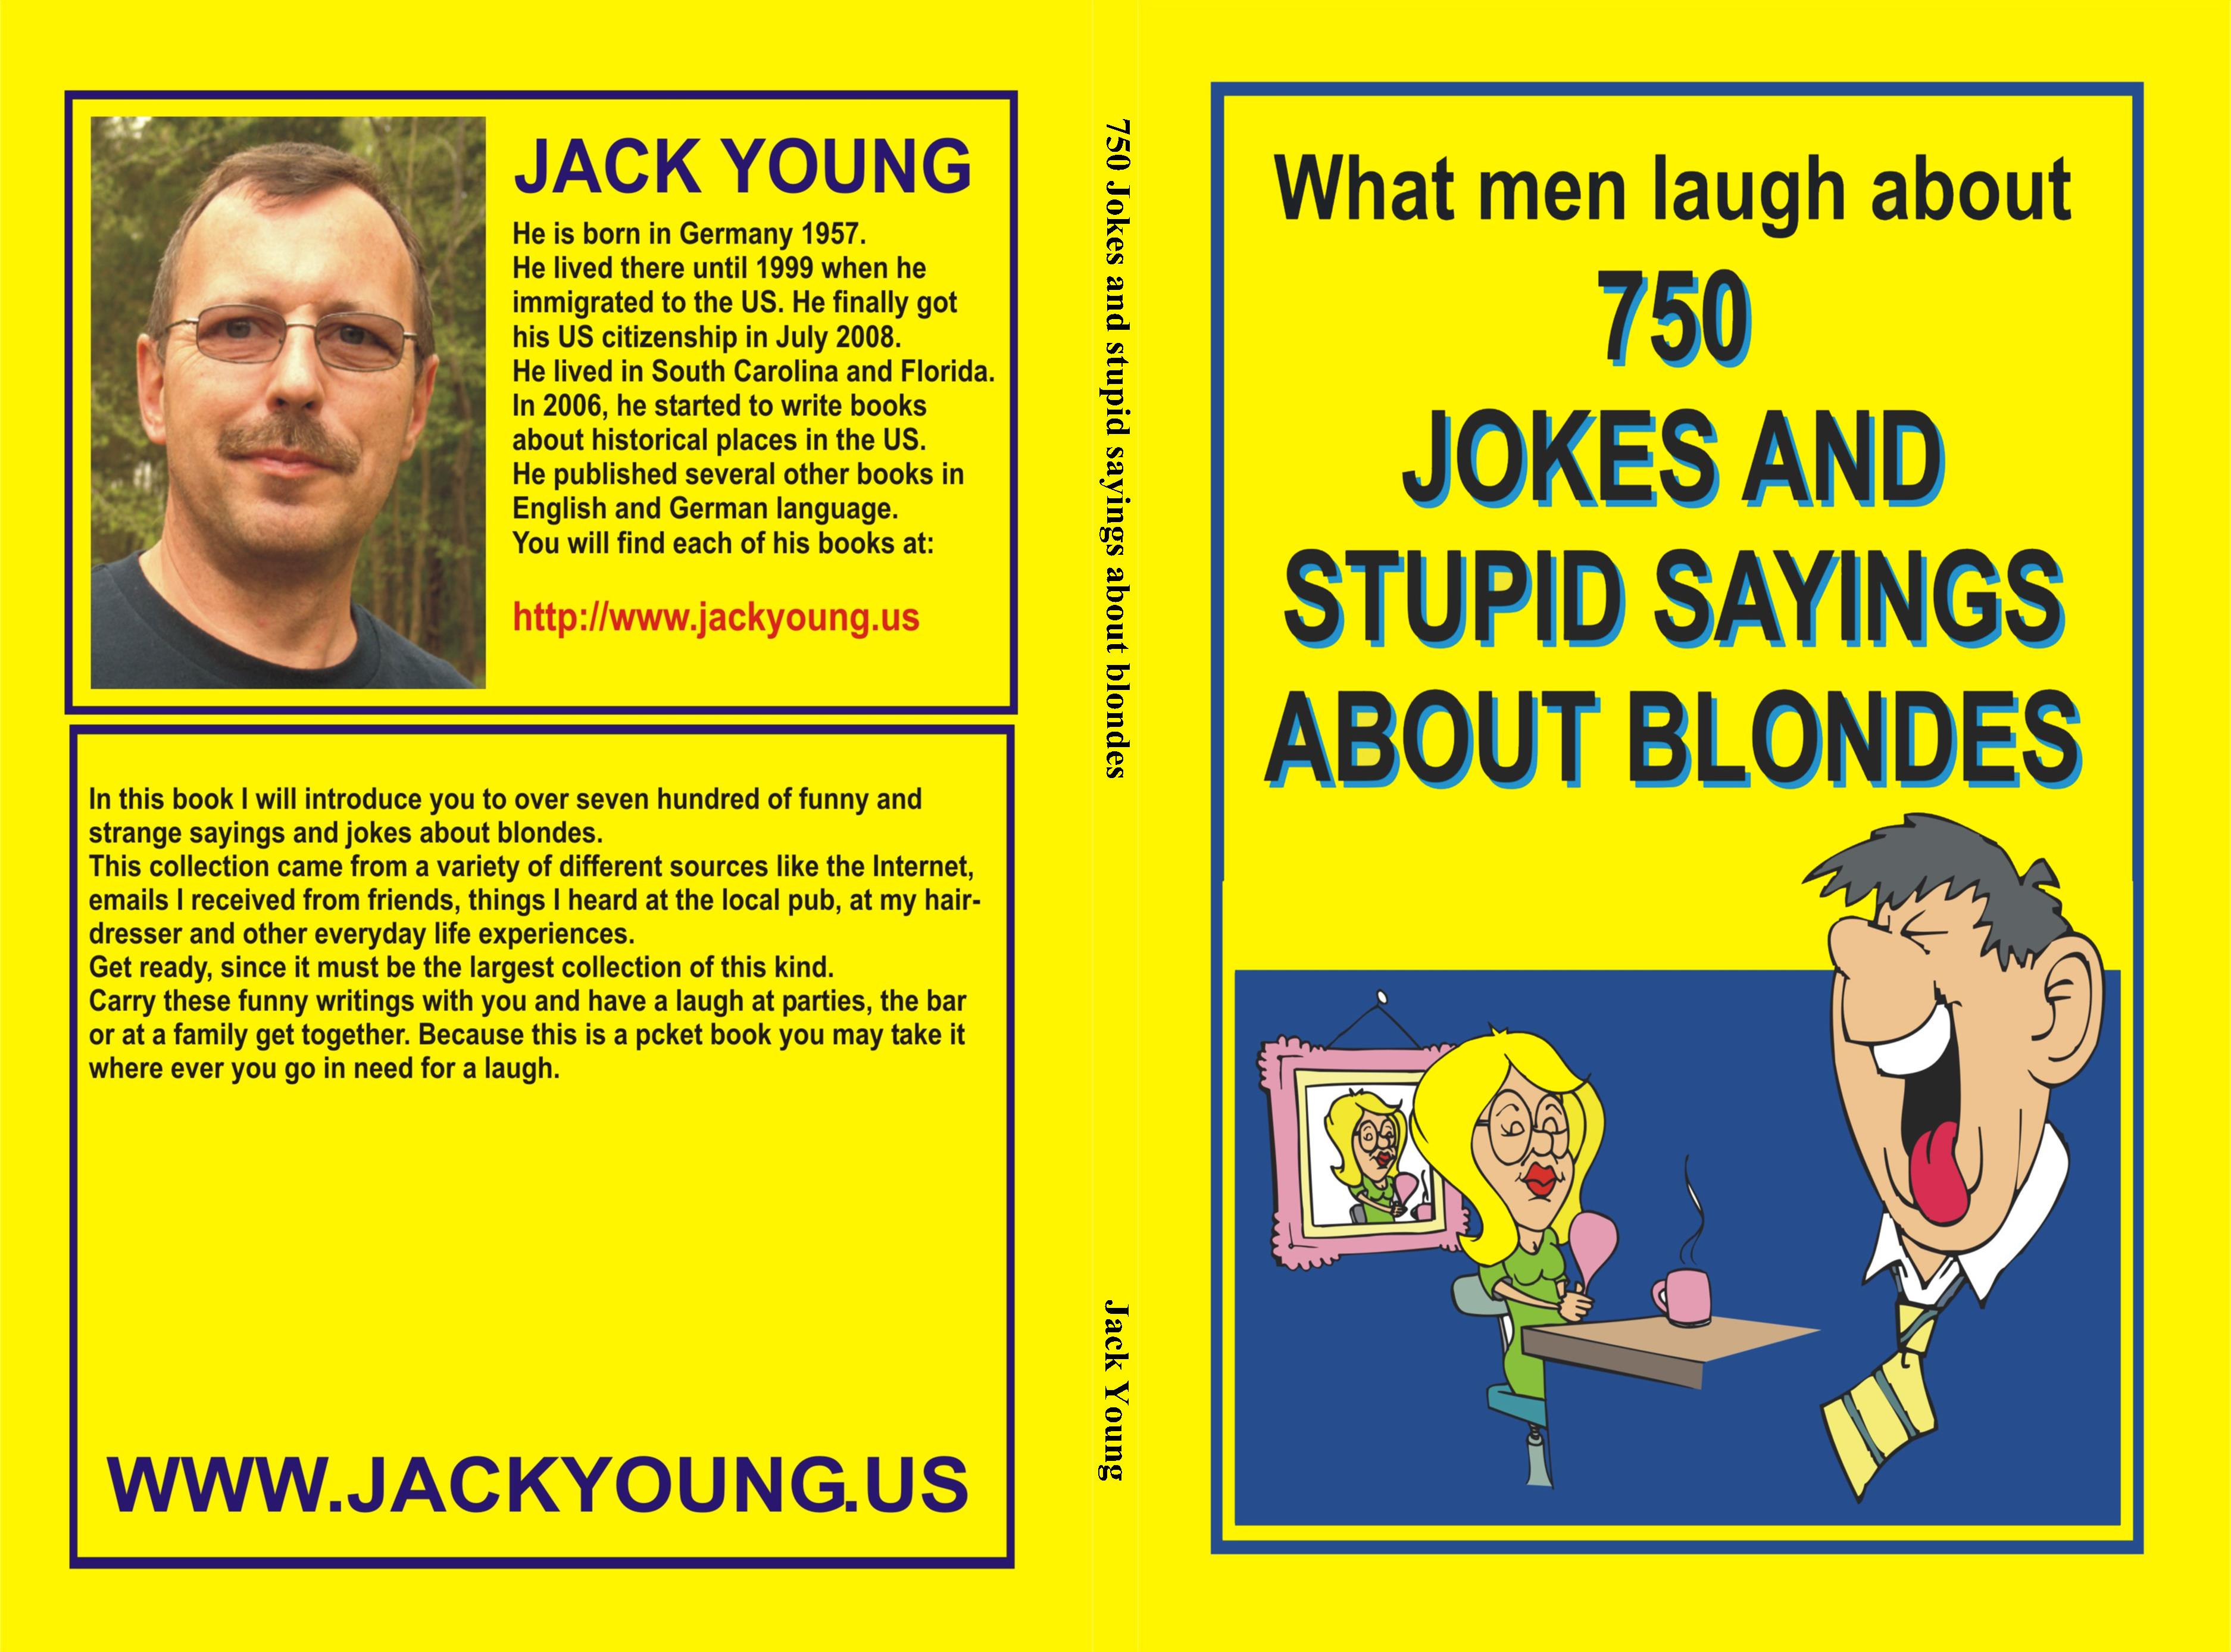 750 Jokes and stupid sayings about blondes cover image